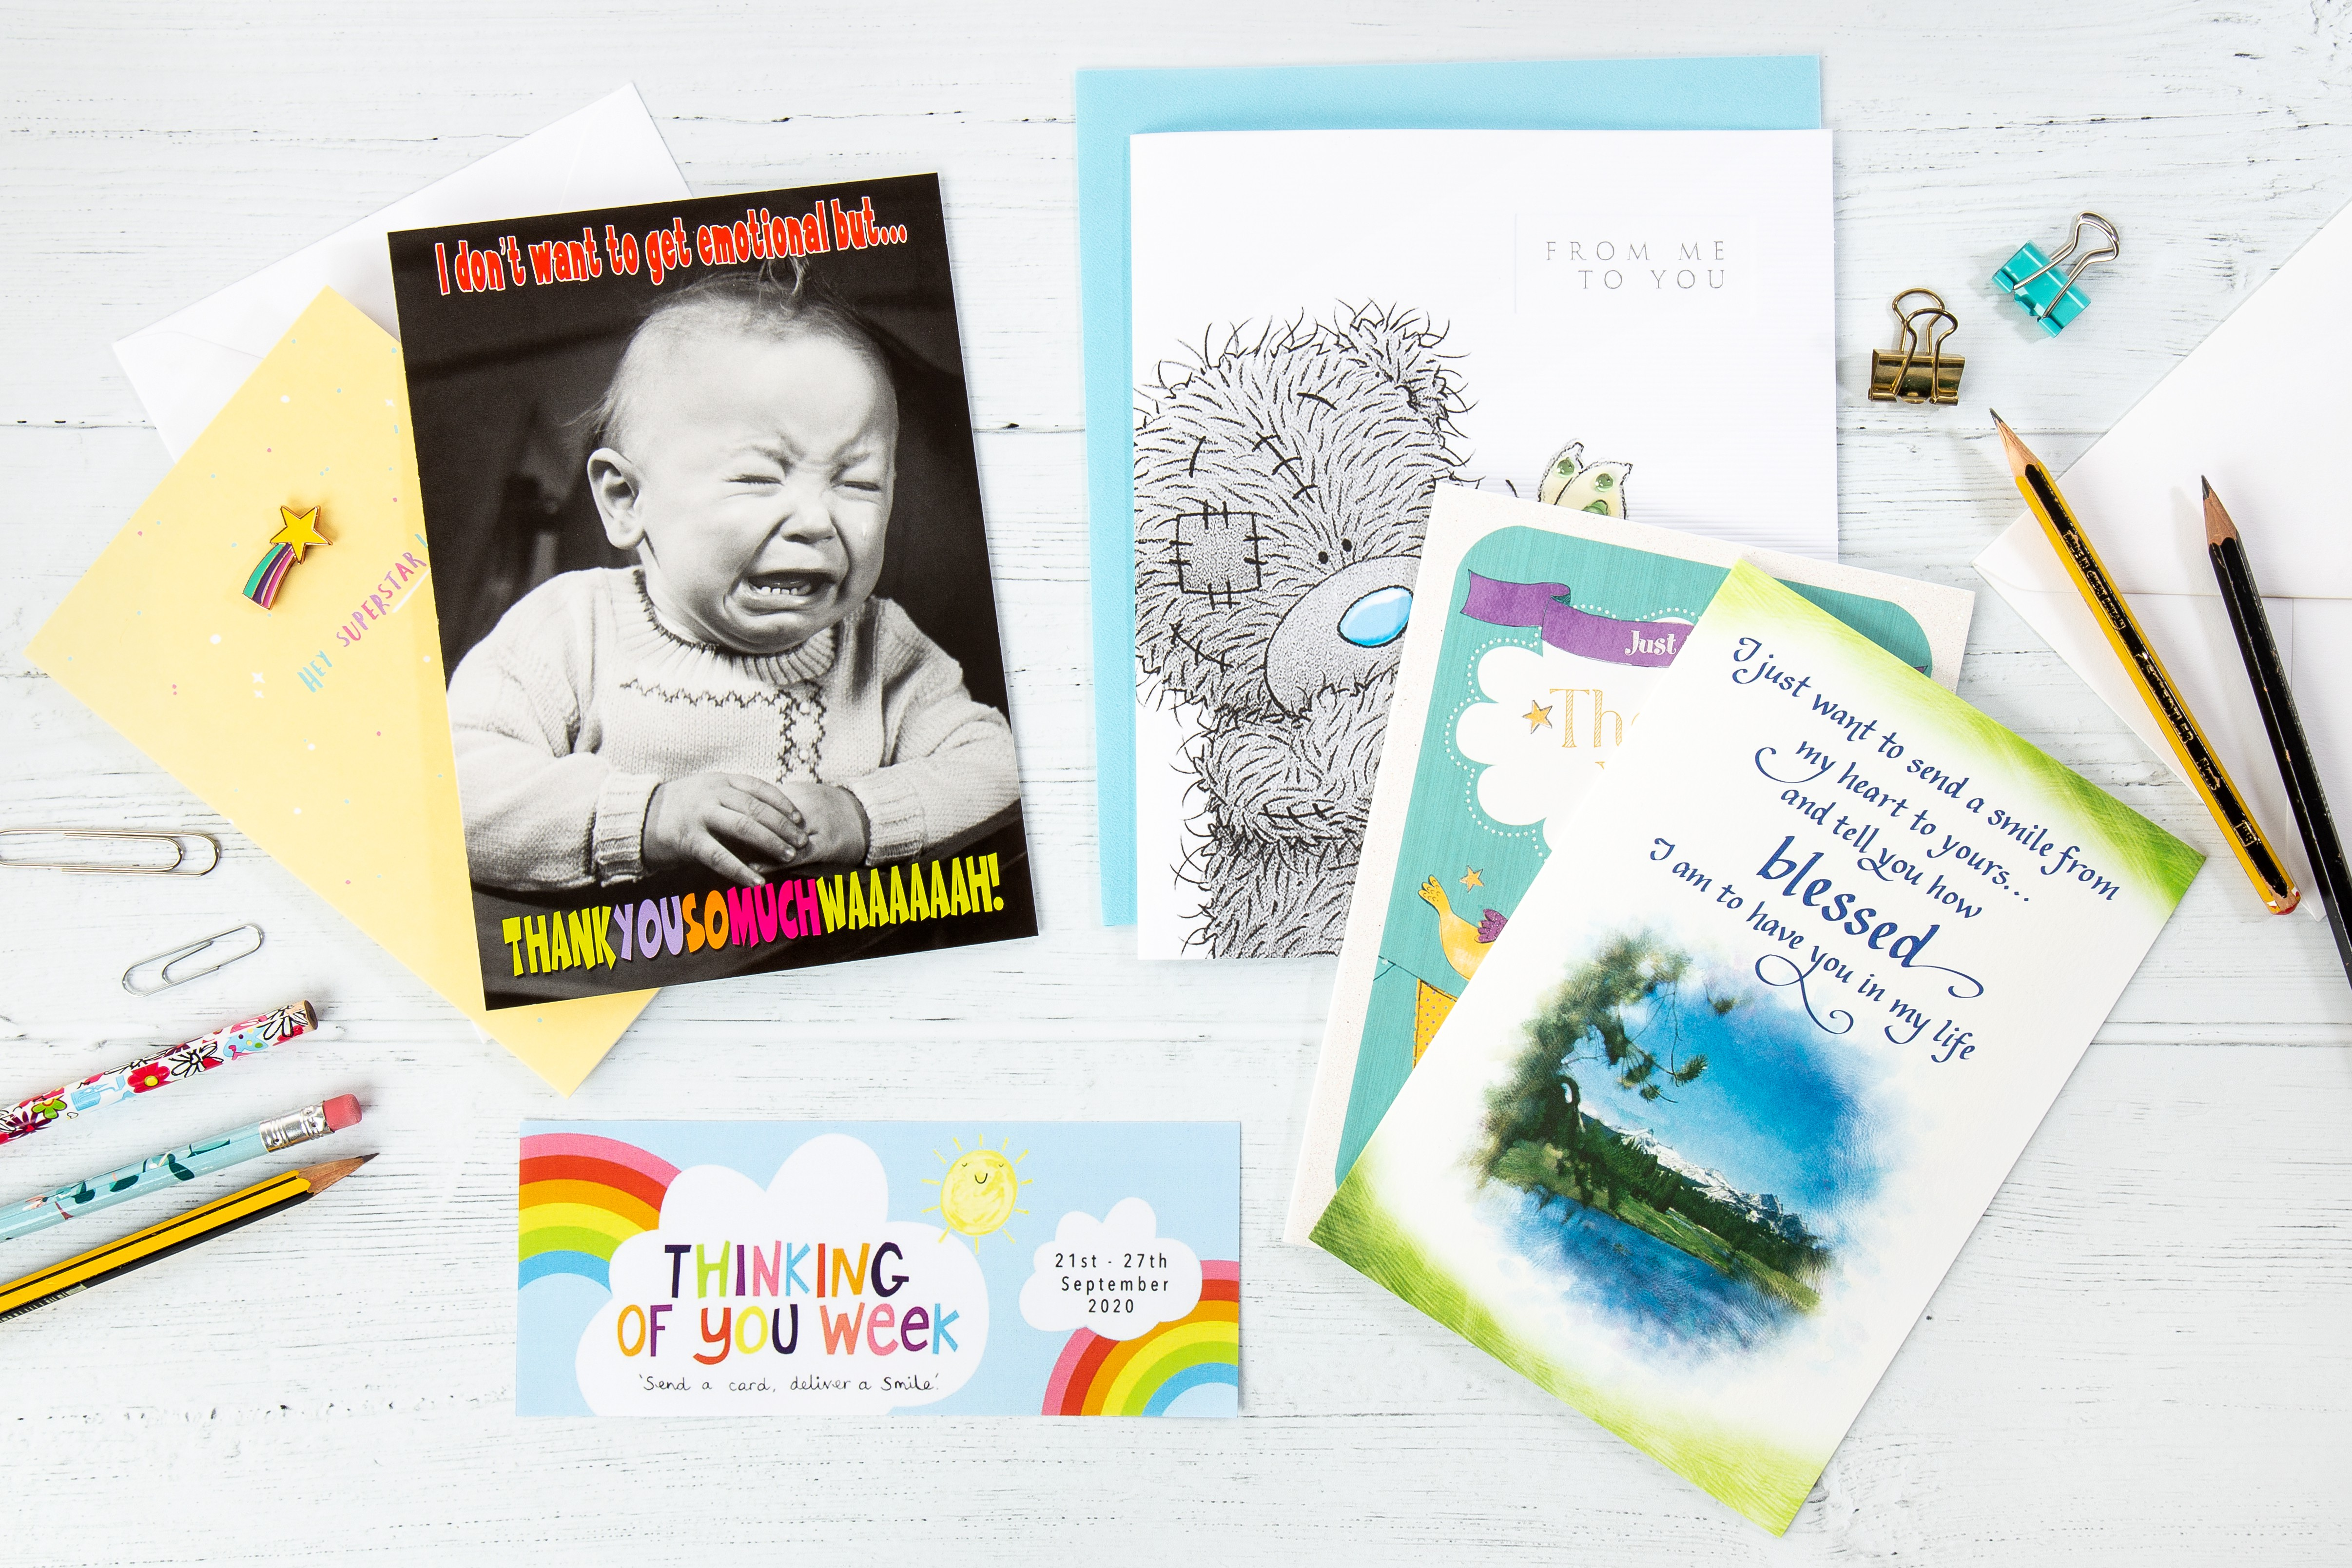 Above: Carte Blanche has come up with a great retailer promotion, offering free cards, as part of its Thinking of You Week activity.